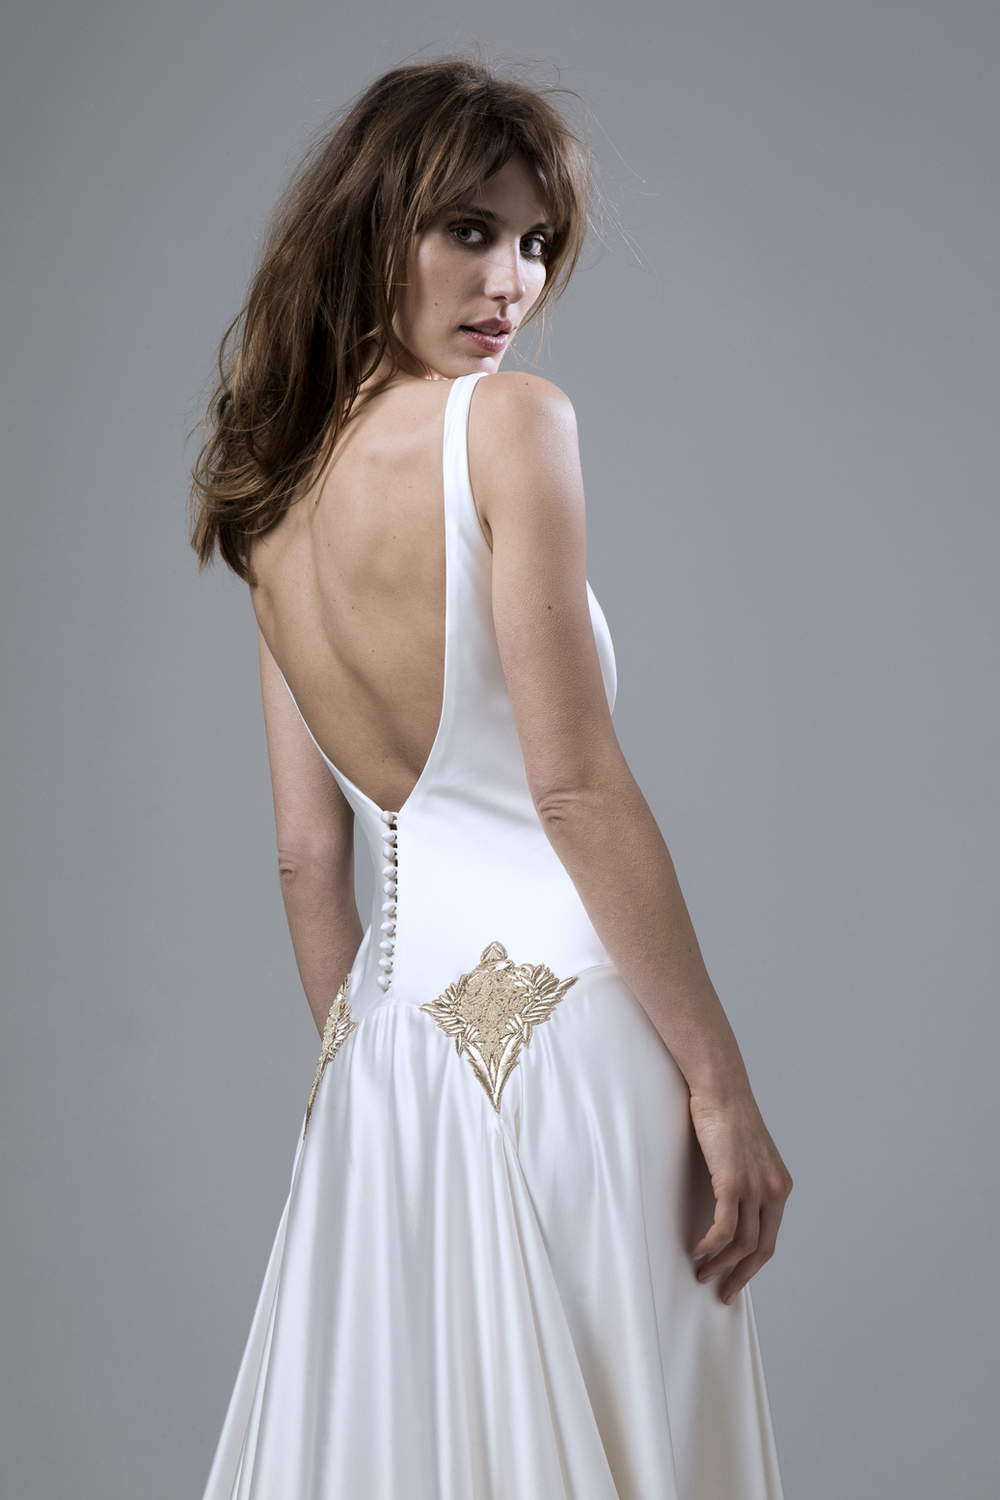 MILLY BAFTA V NECK AND LOW V BACK WEDDING DRESS WITH GODGETS AND EMBELLISHMENT DETAILING BY HALFPENNY LONDON